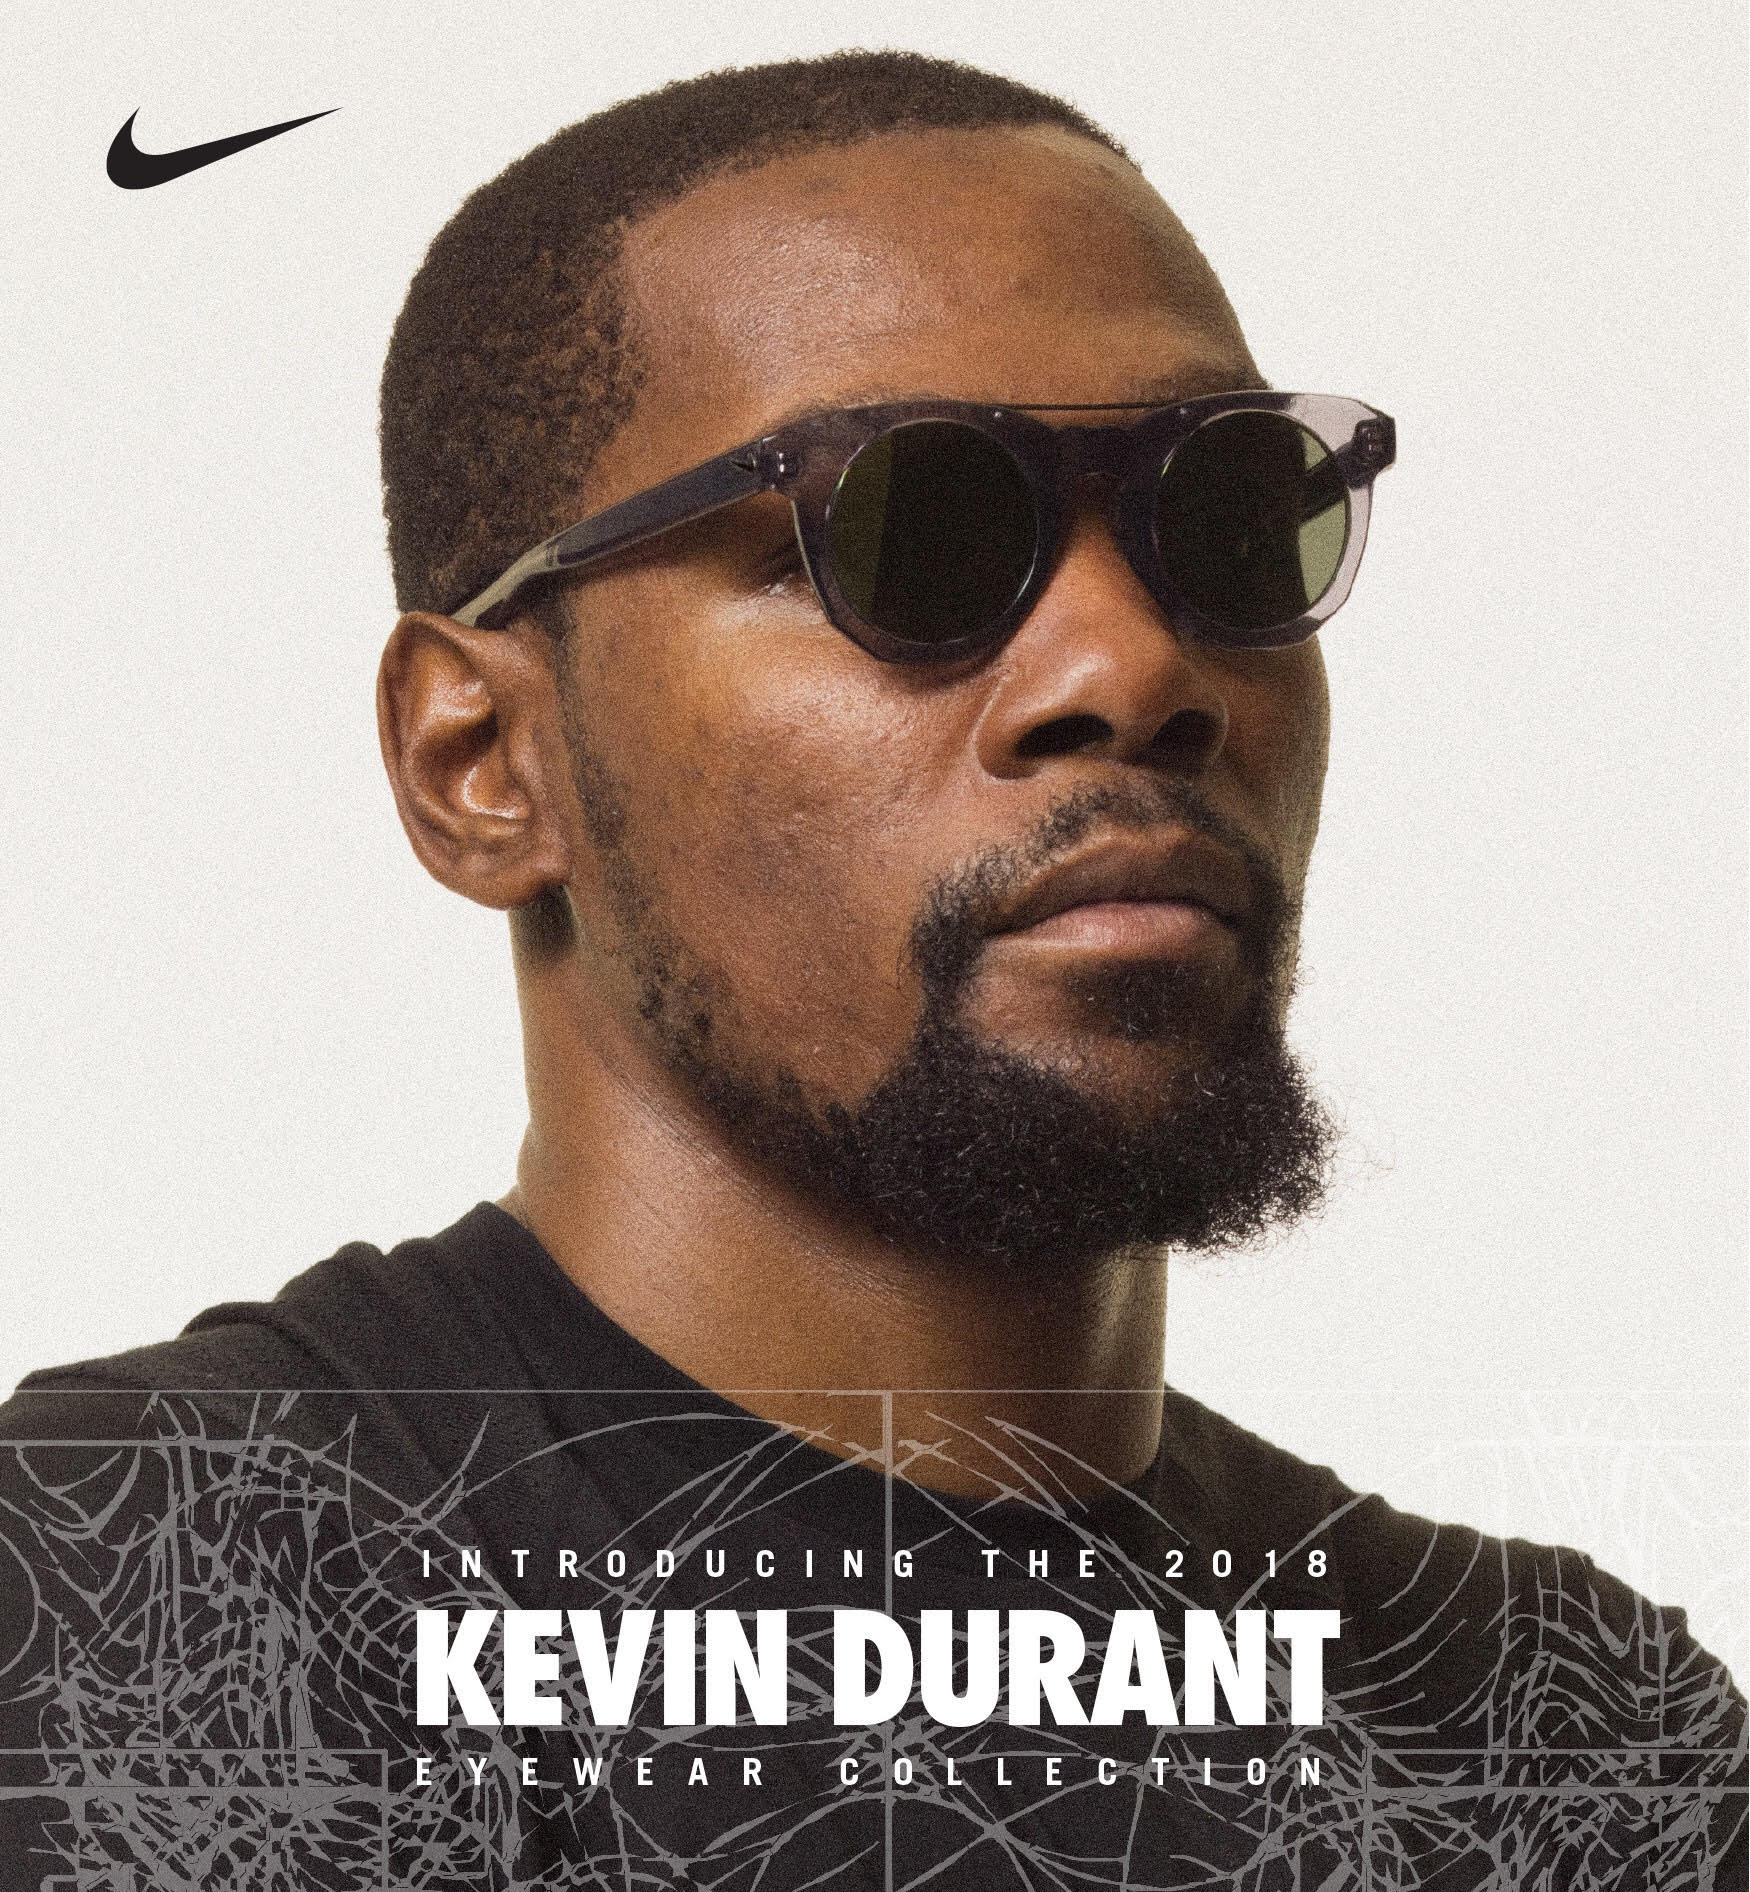 Nike Vision Drops Kevin Durant's 2018 Eyewear Collection